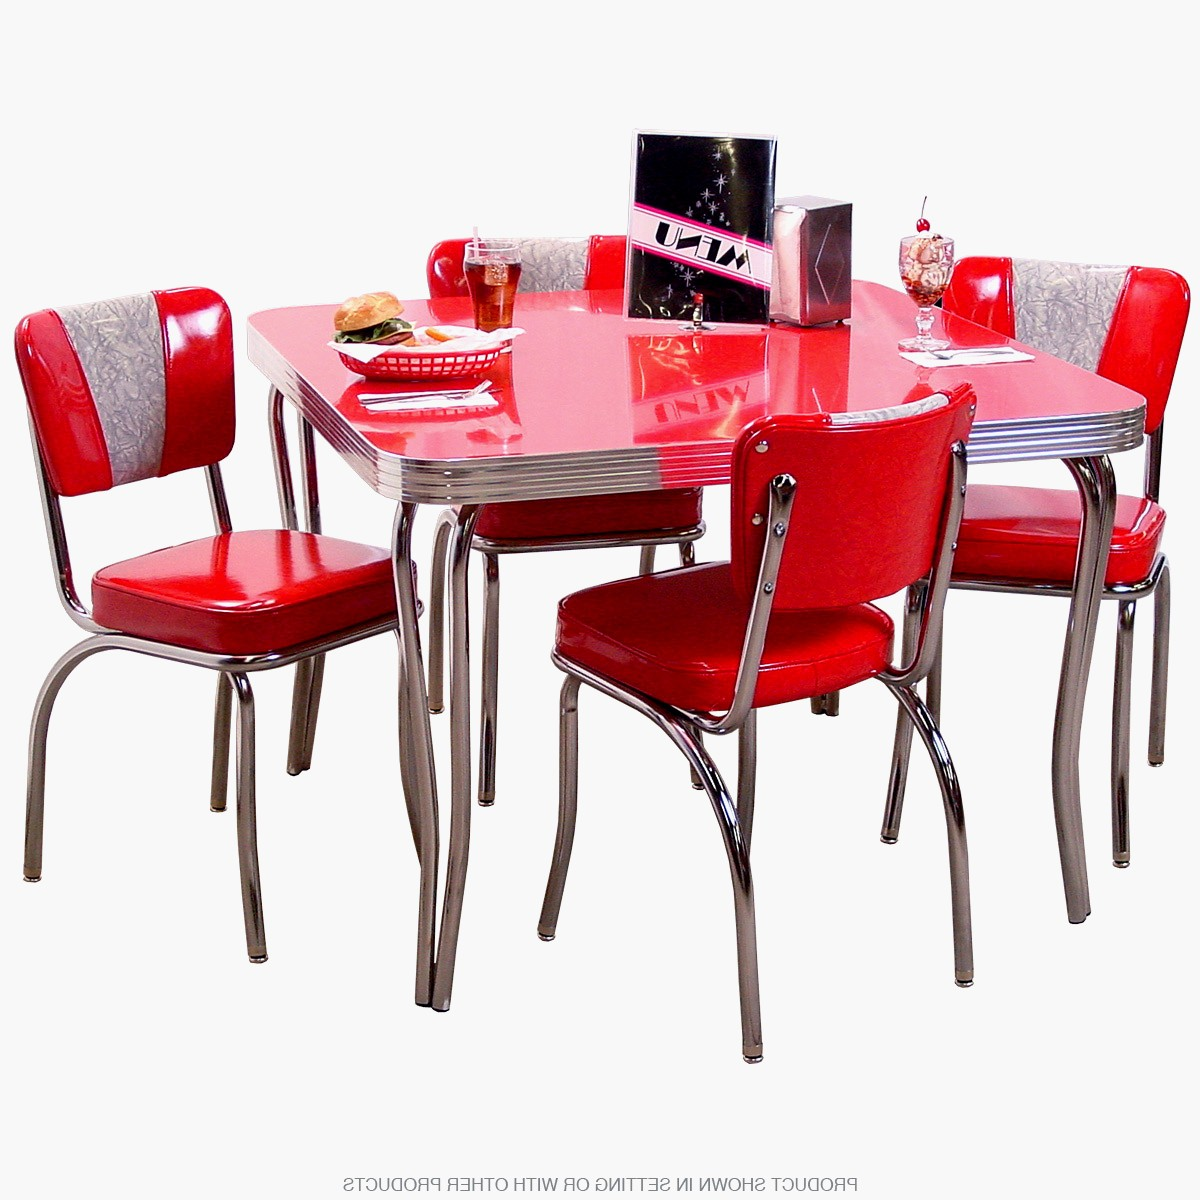 retro red kitchen chairs photo - 3